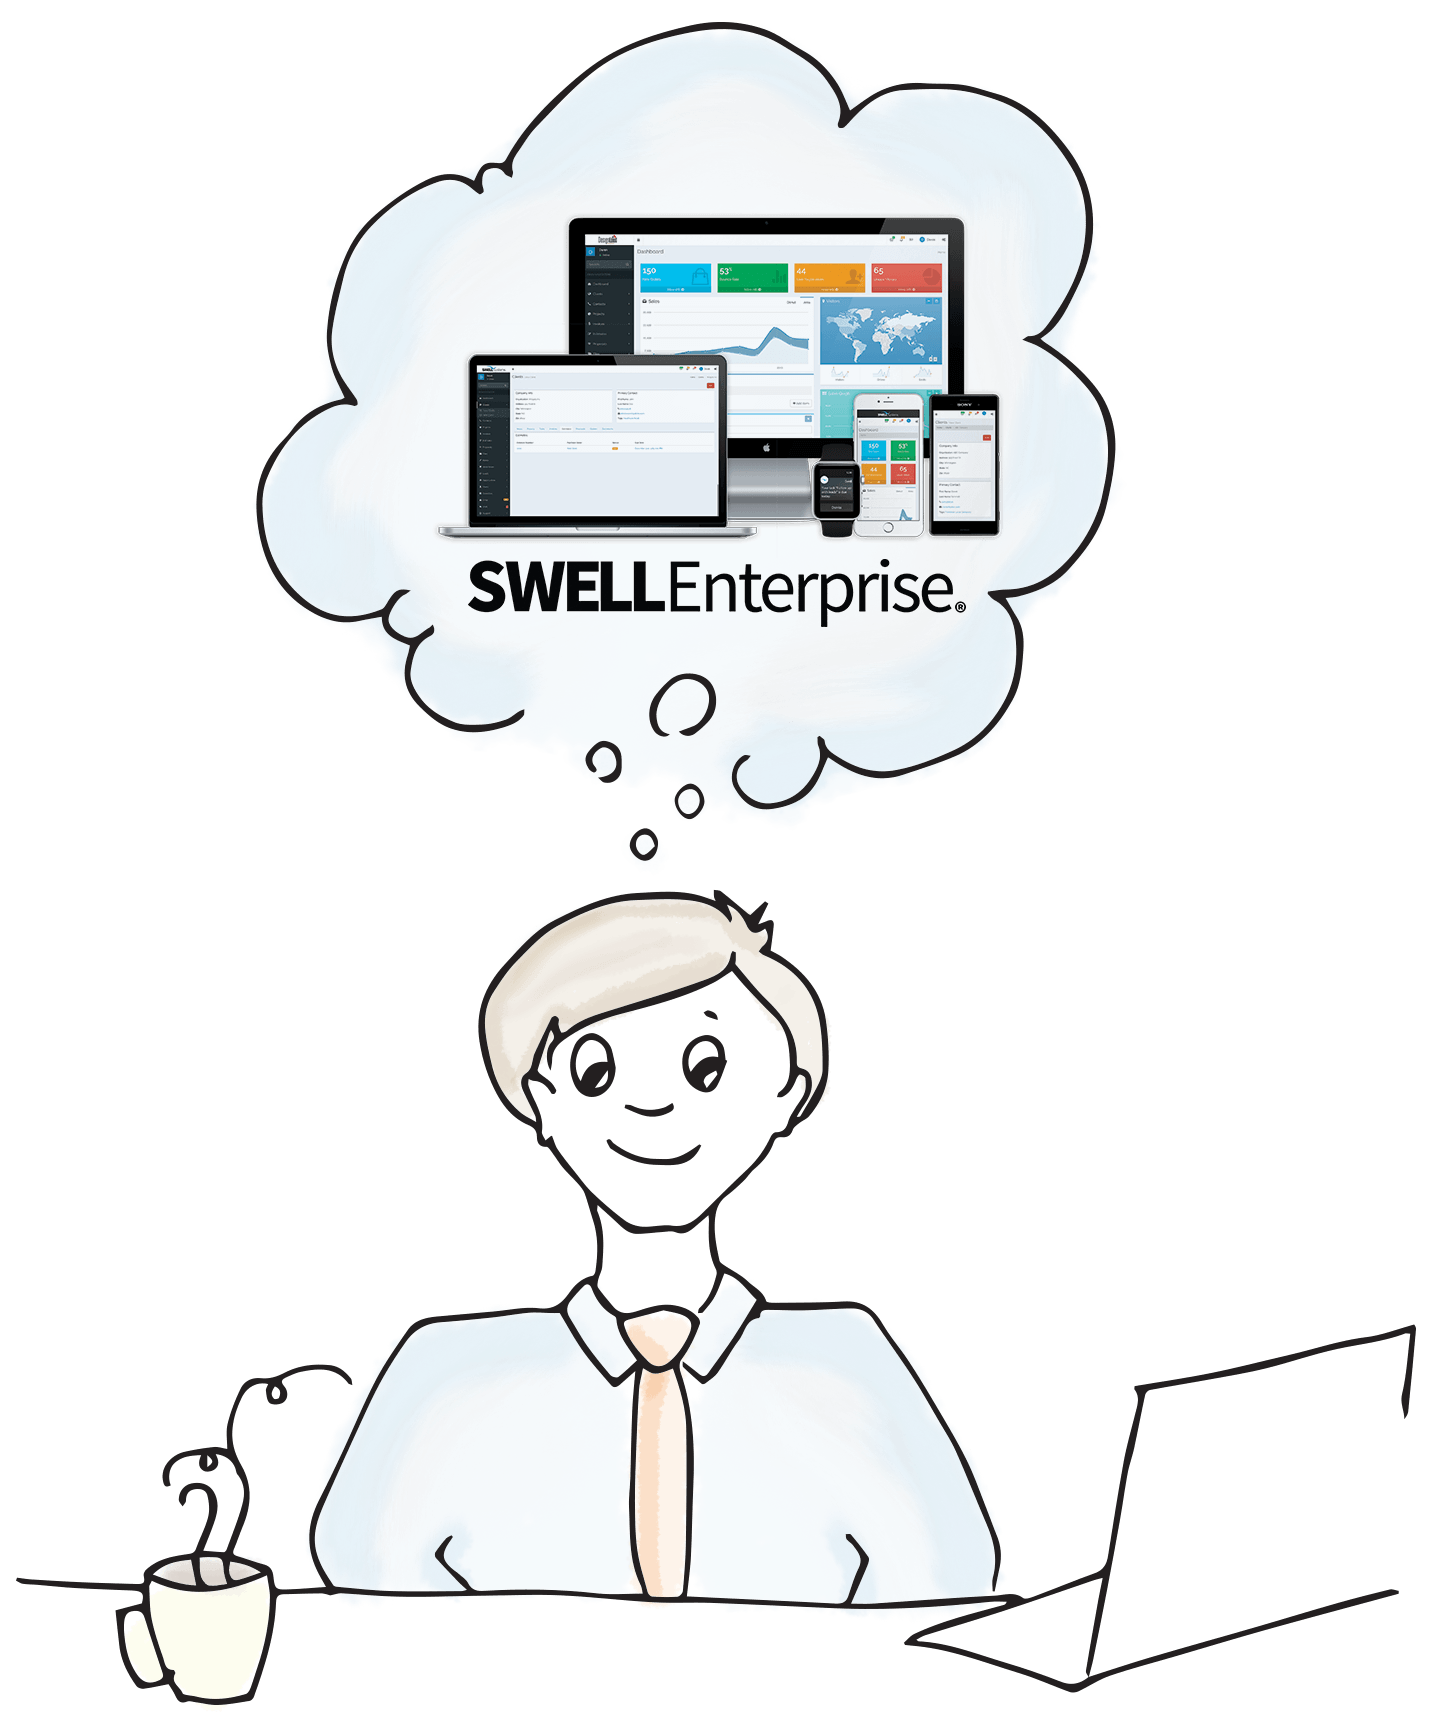 SWELLEnterprise is an enterprise-style, all-in-one suite for small business owners